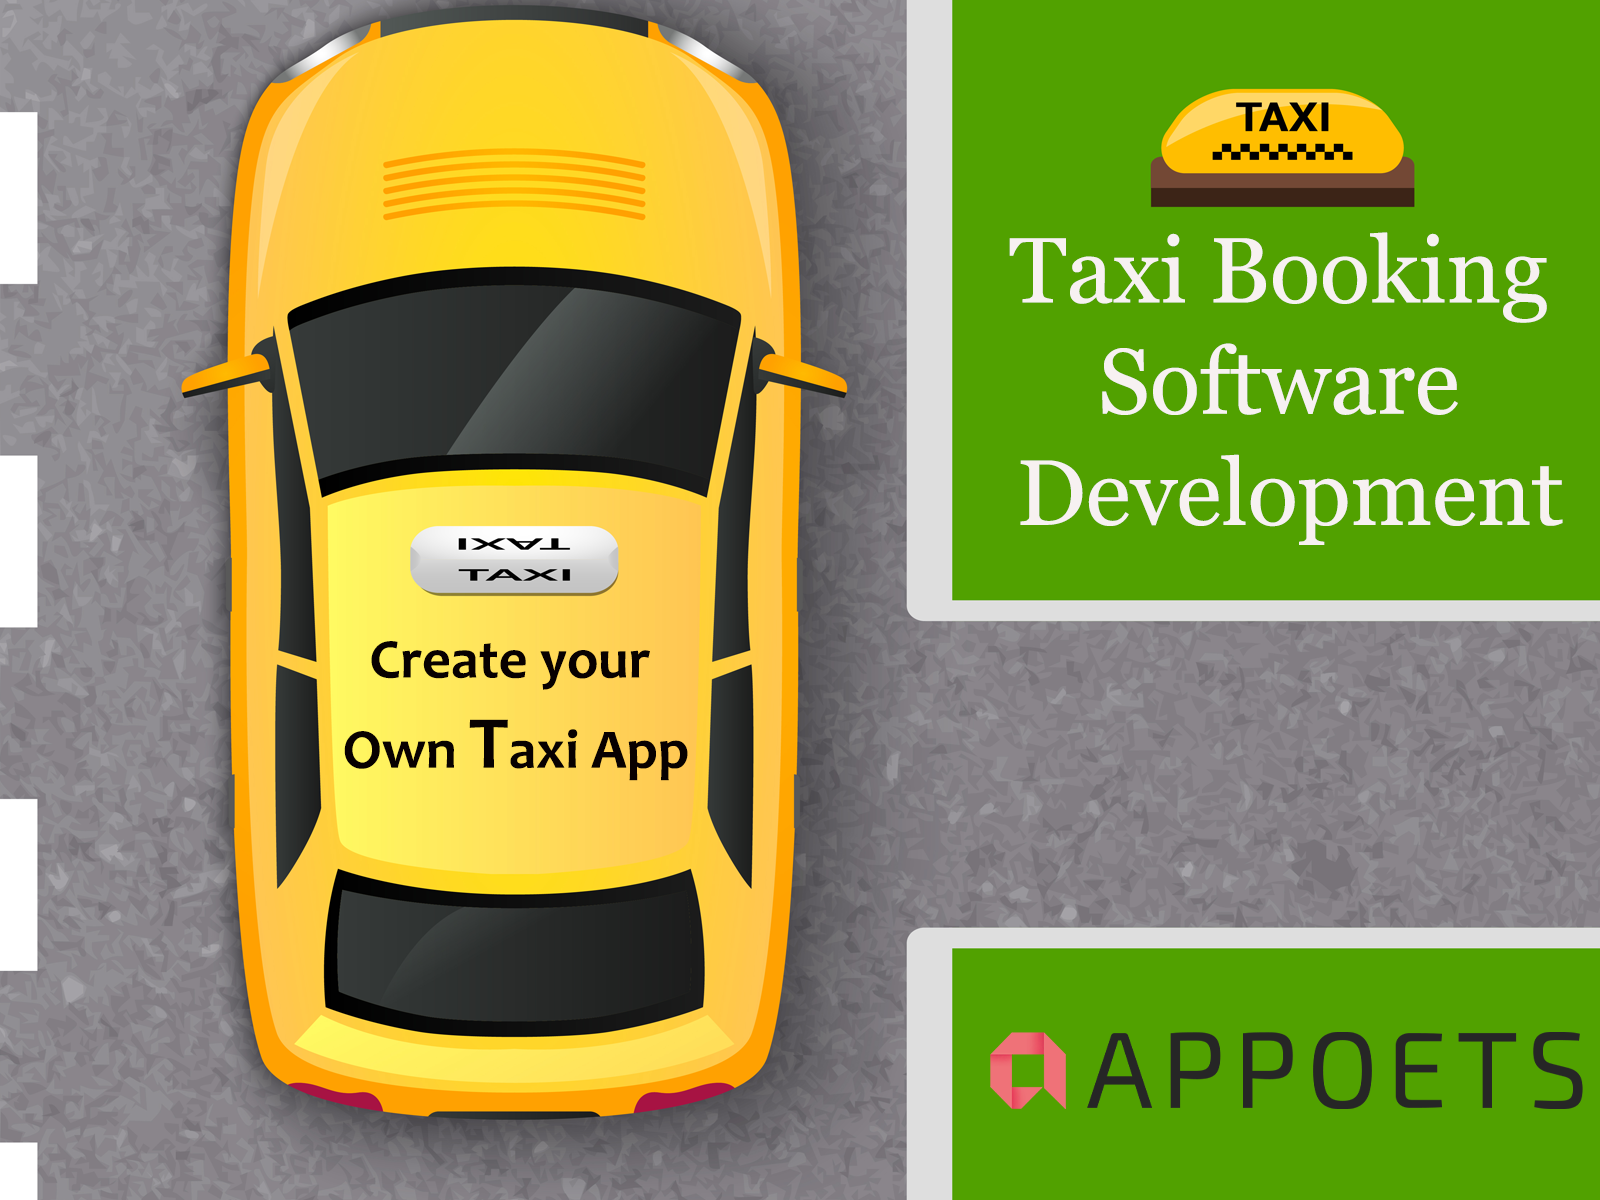 A Taxibooking application is a consumer's staple